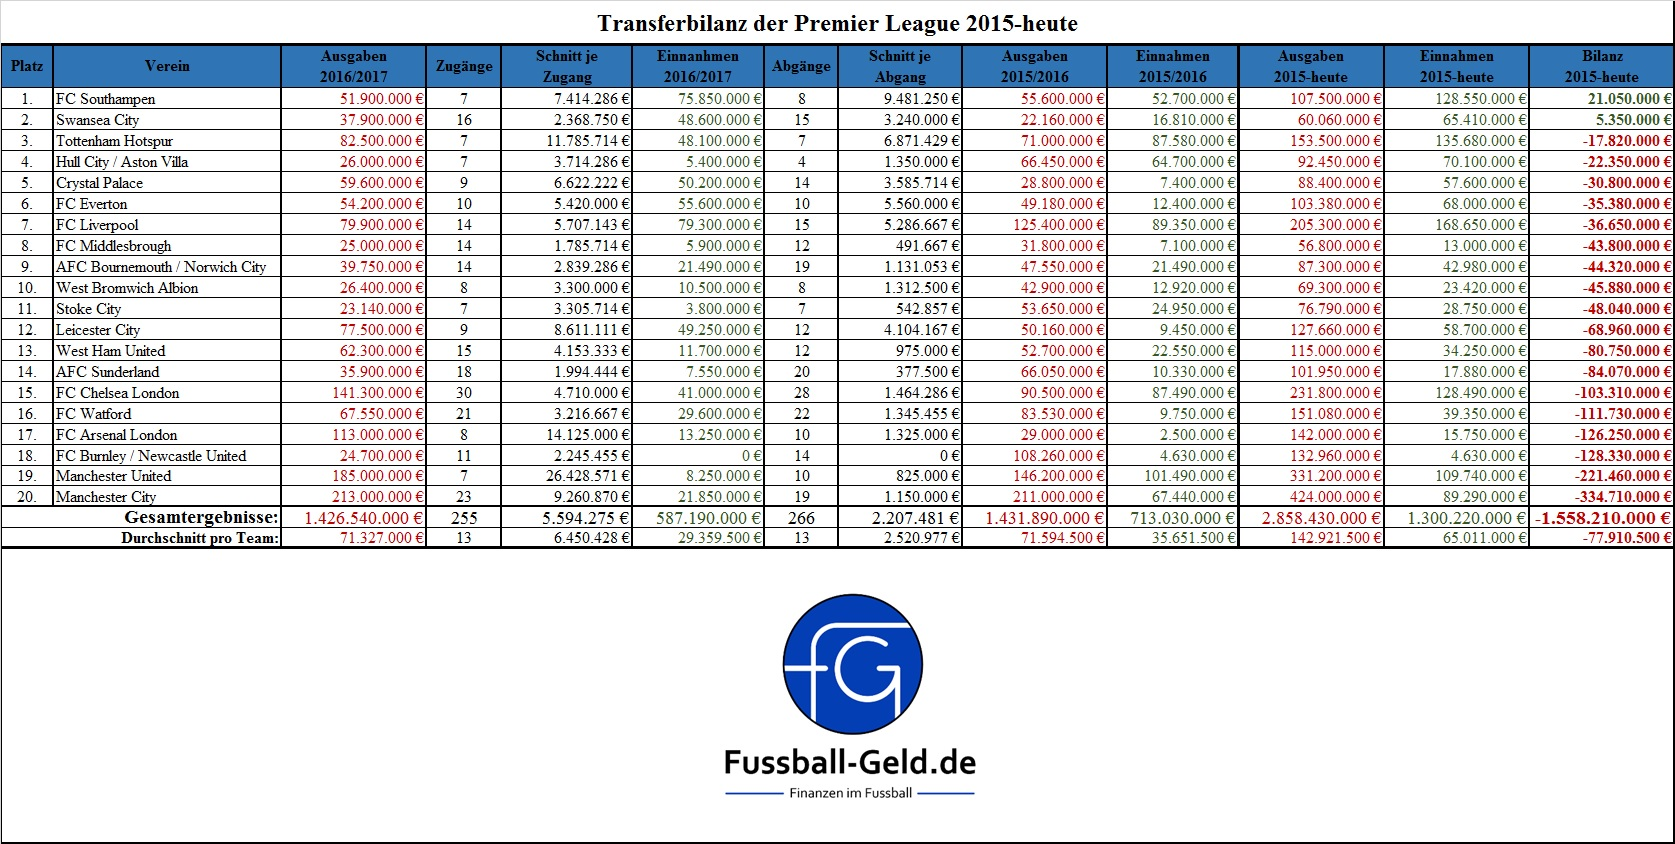 transferbilanz-premier-league